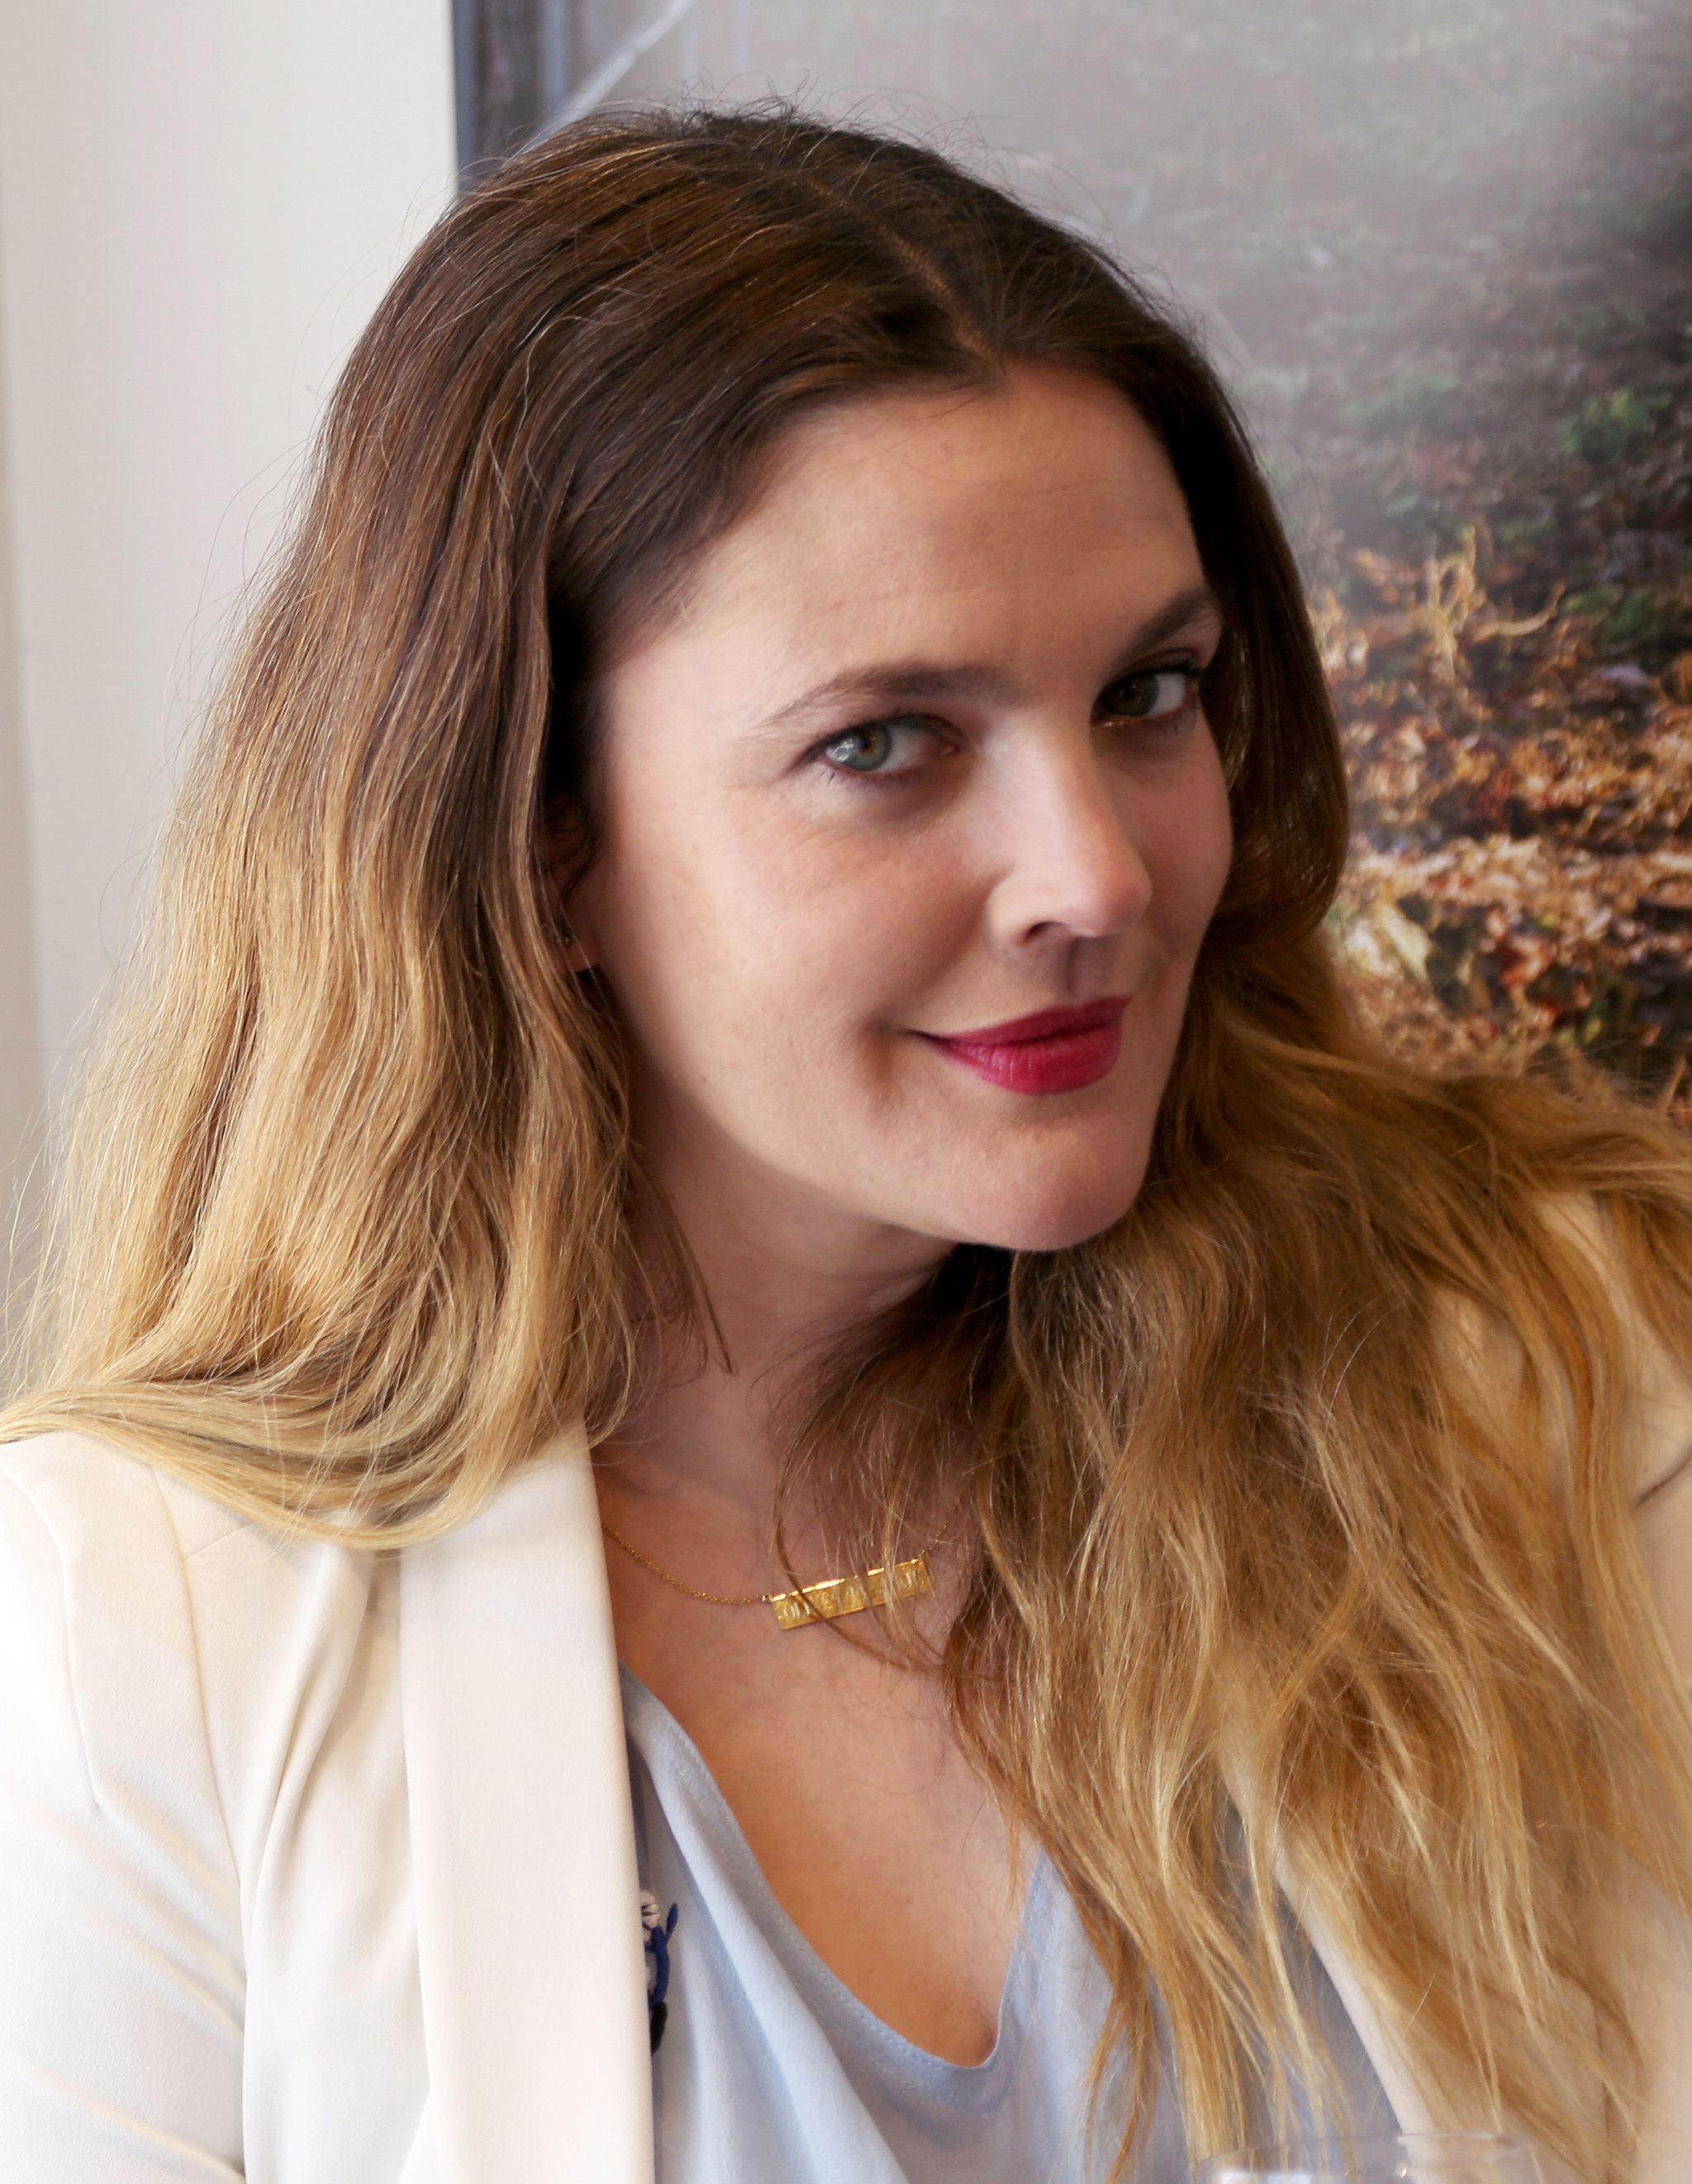 Drew Barrymore's Makeup April 2016 | POPSUGAR Beauty Drew Barrymore